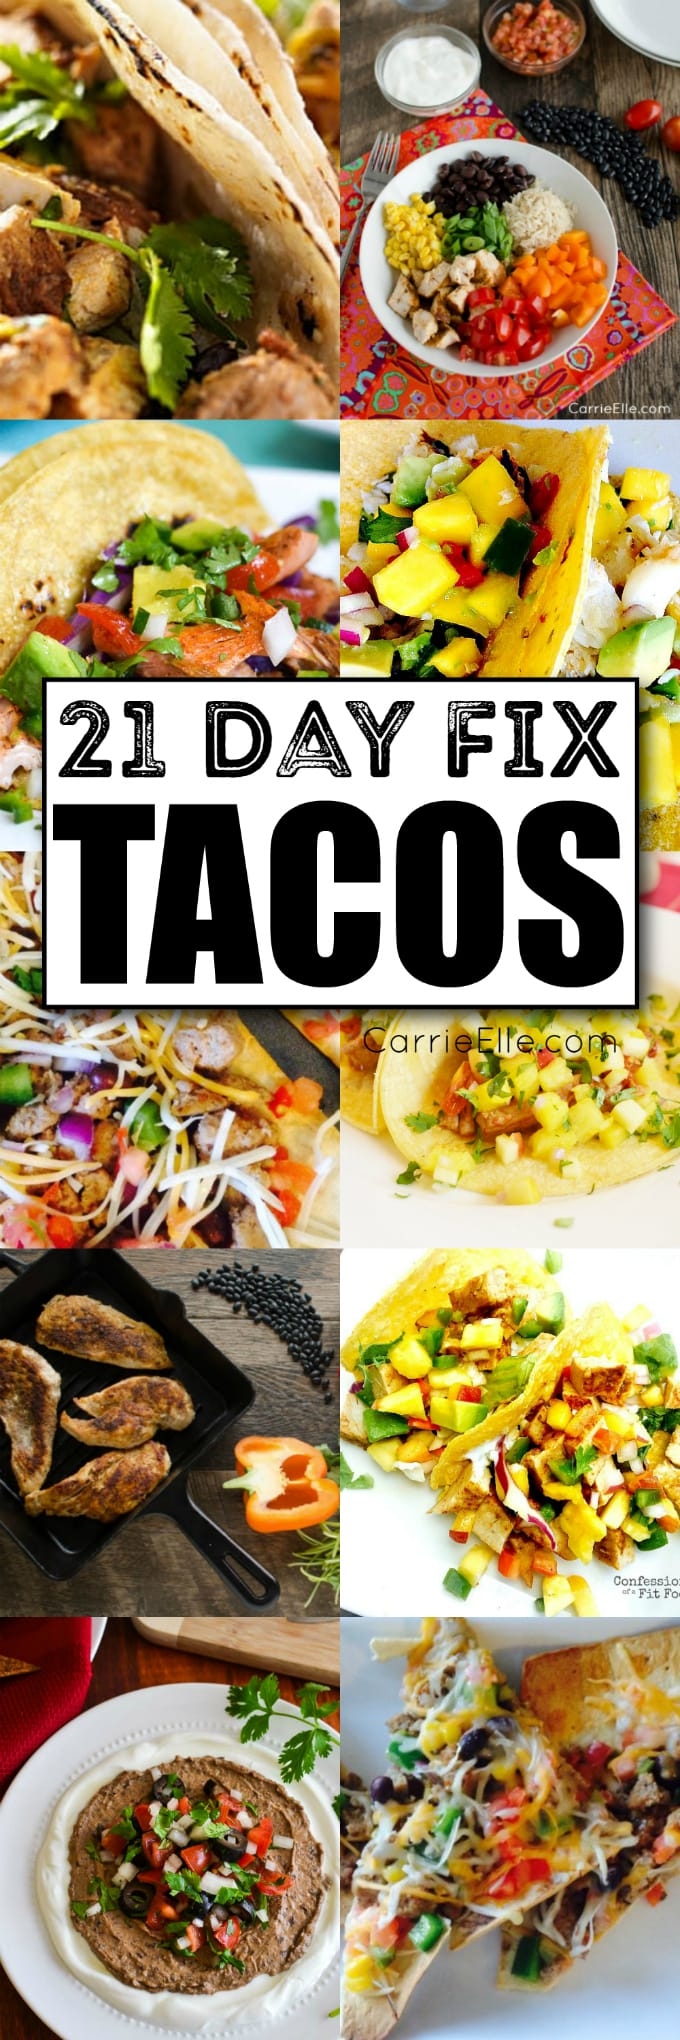 21 Day Fix Tacos